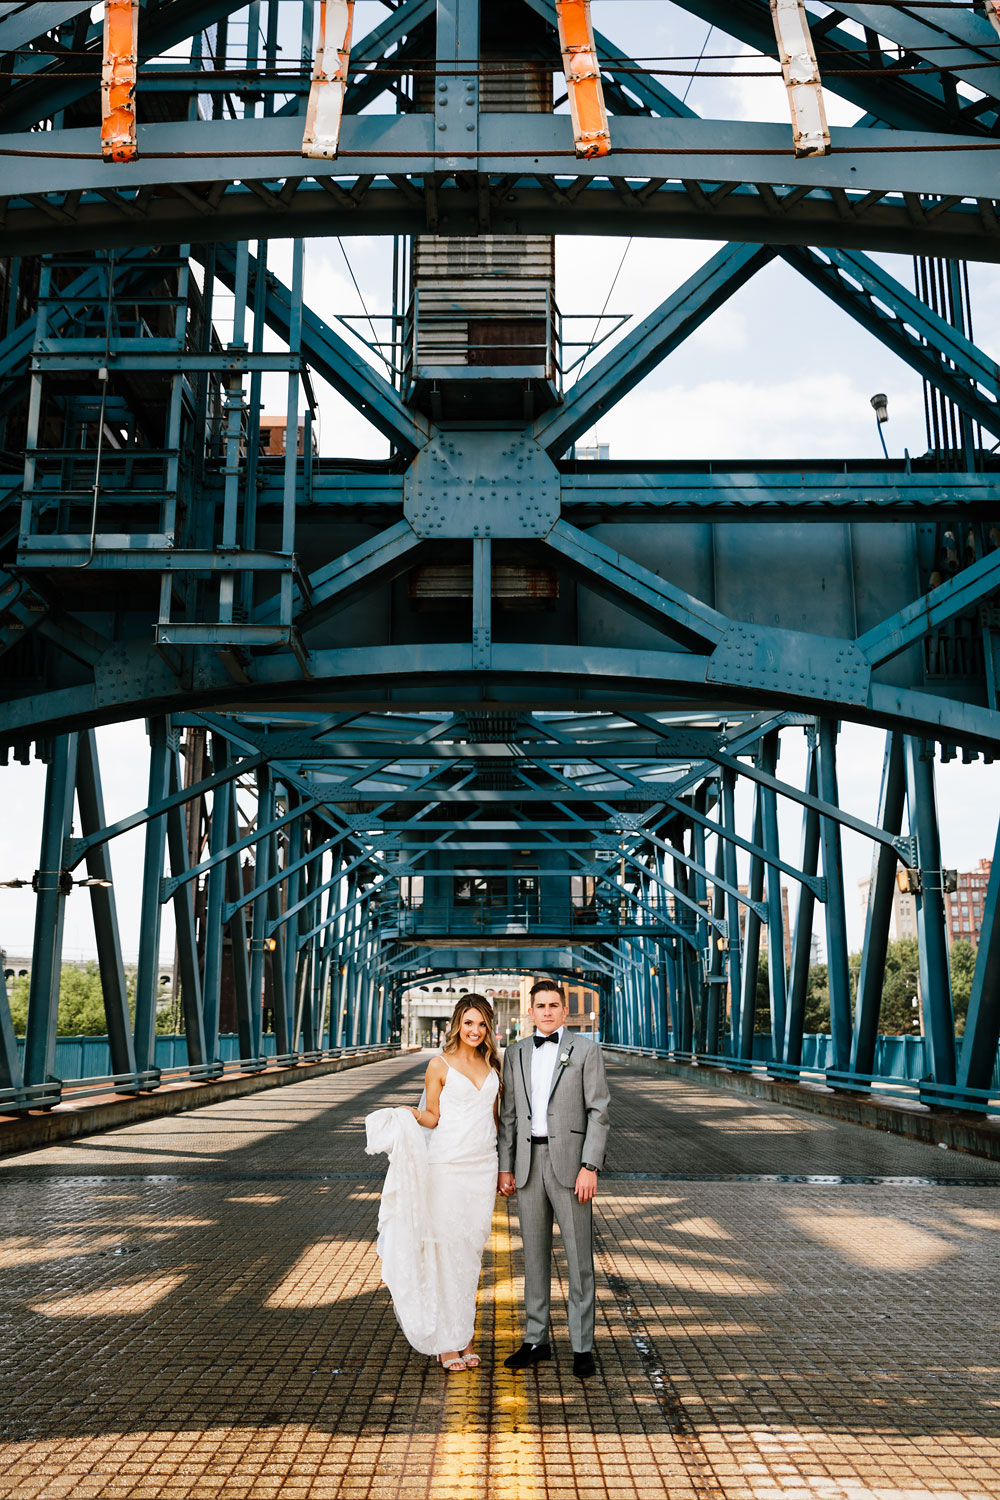 tenk-west-bank-flats-photography-wedding-photographers-in-cleveland-downtown-industrial-69.jpg